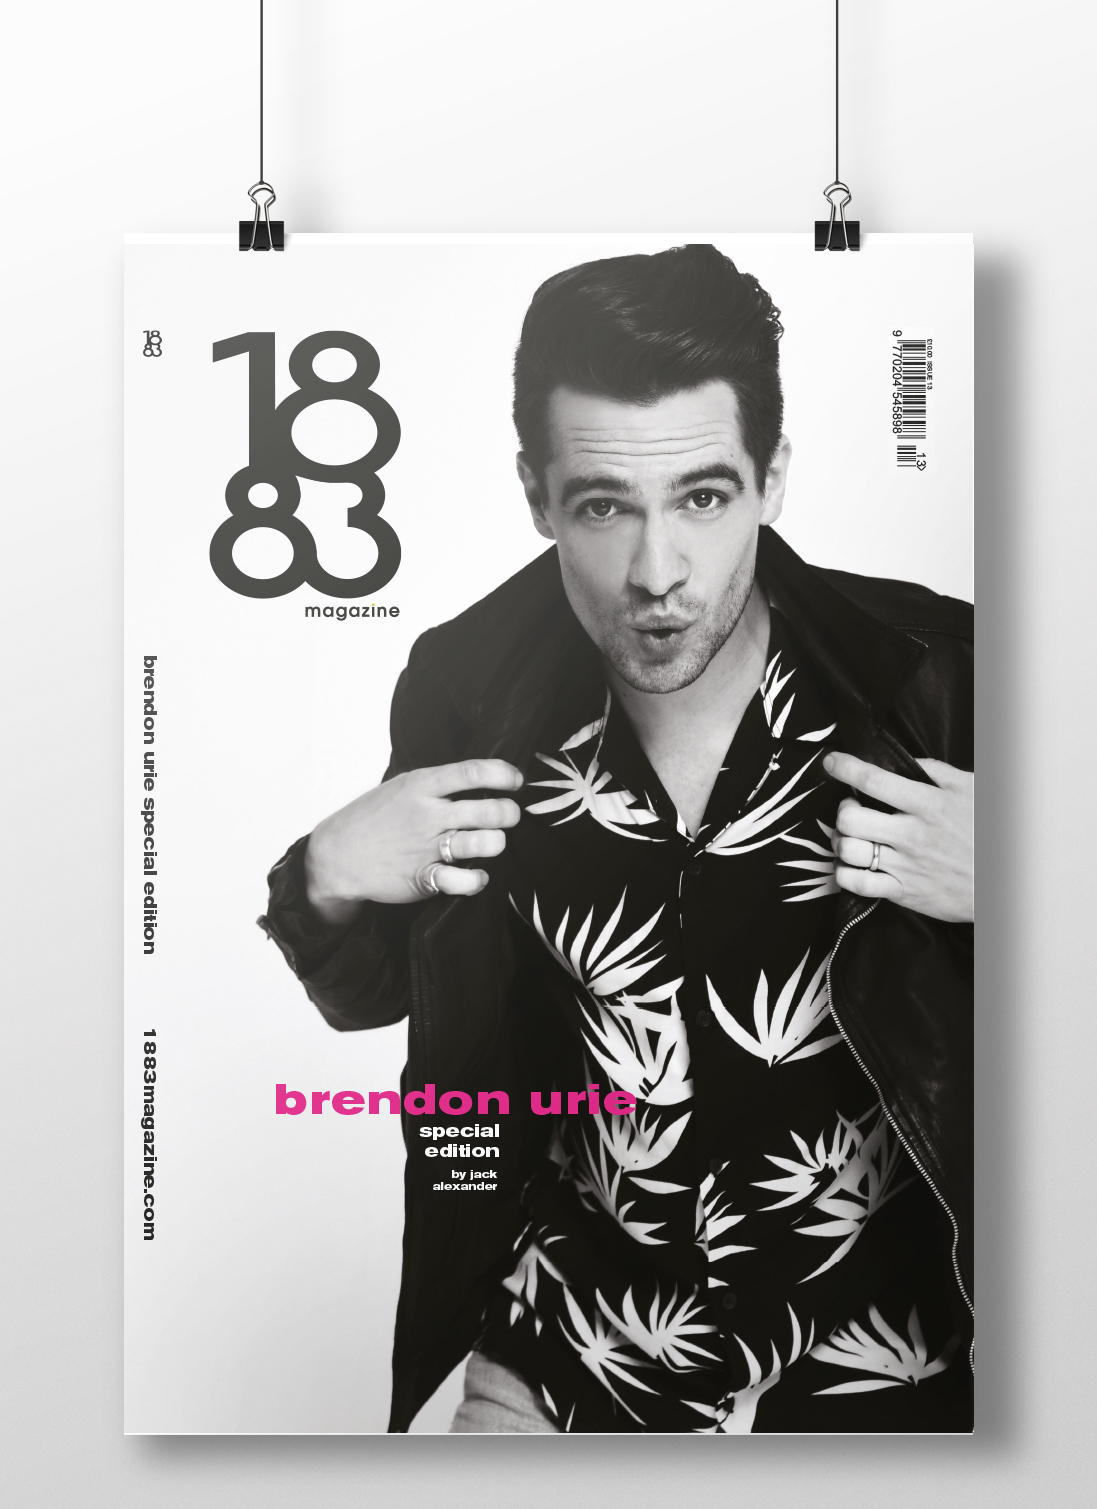 Brendon Urie cover poster P1